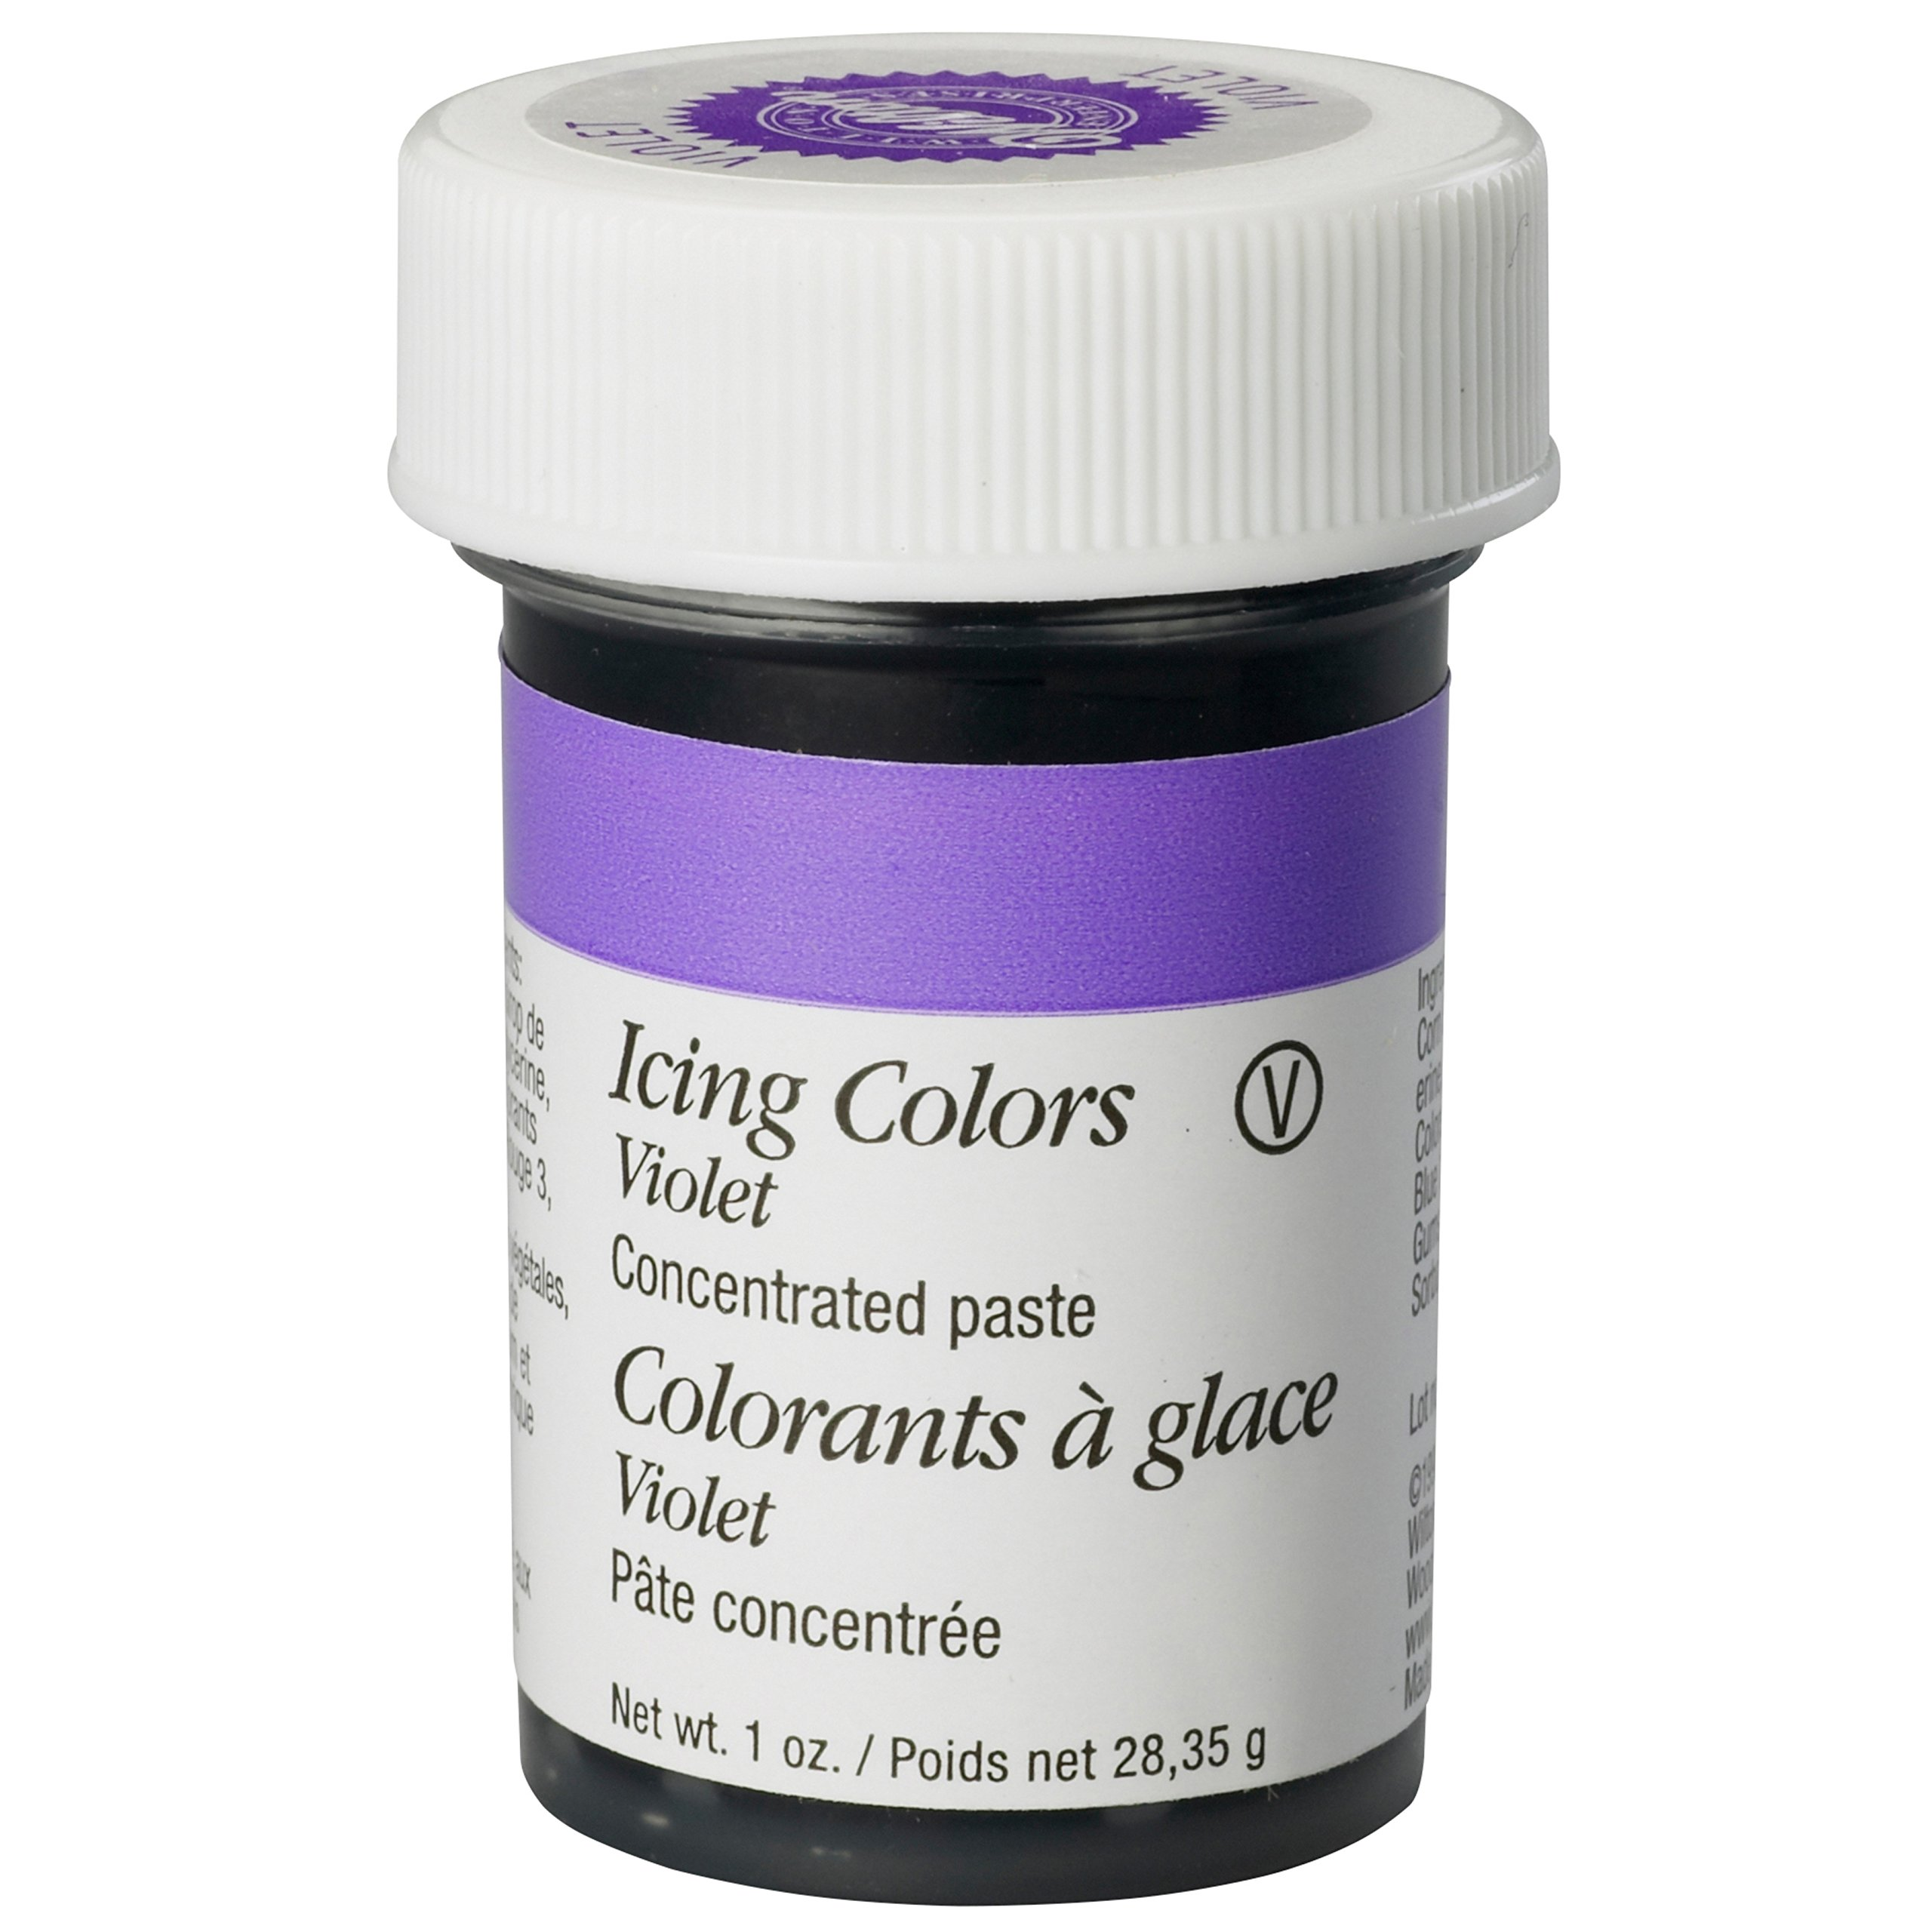 Amazon.com : Wilton Icing Colors 1 Oz: Red : Icing Colors Red ...